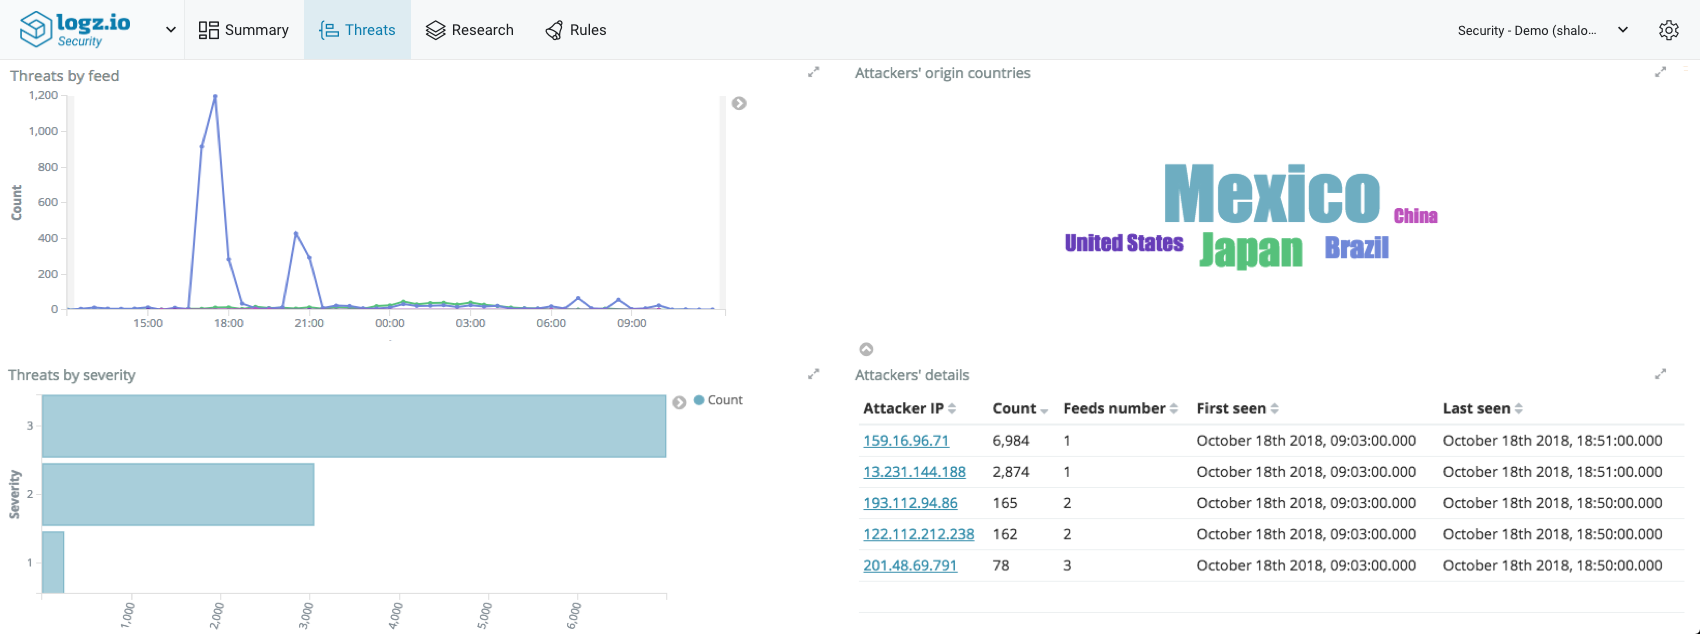 Logz.io Security Analytics Threats page